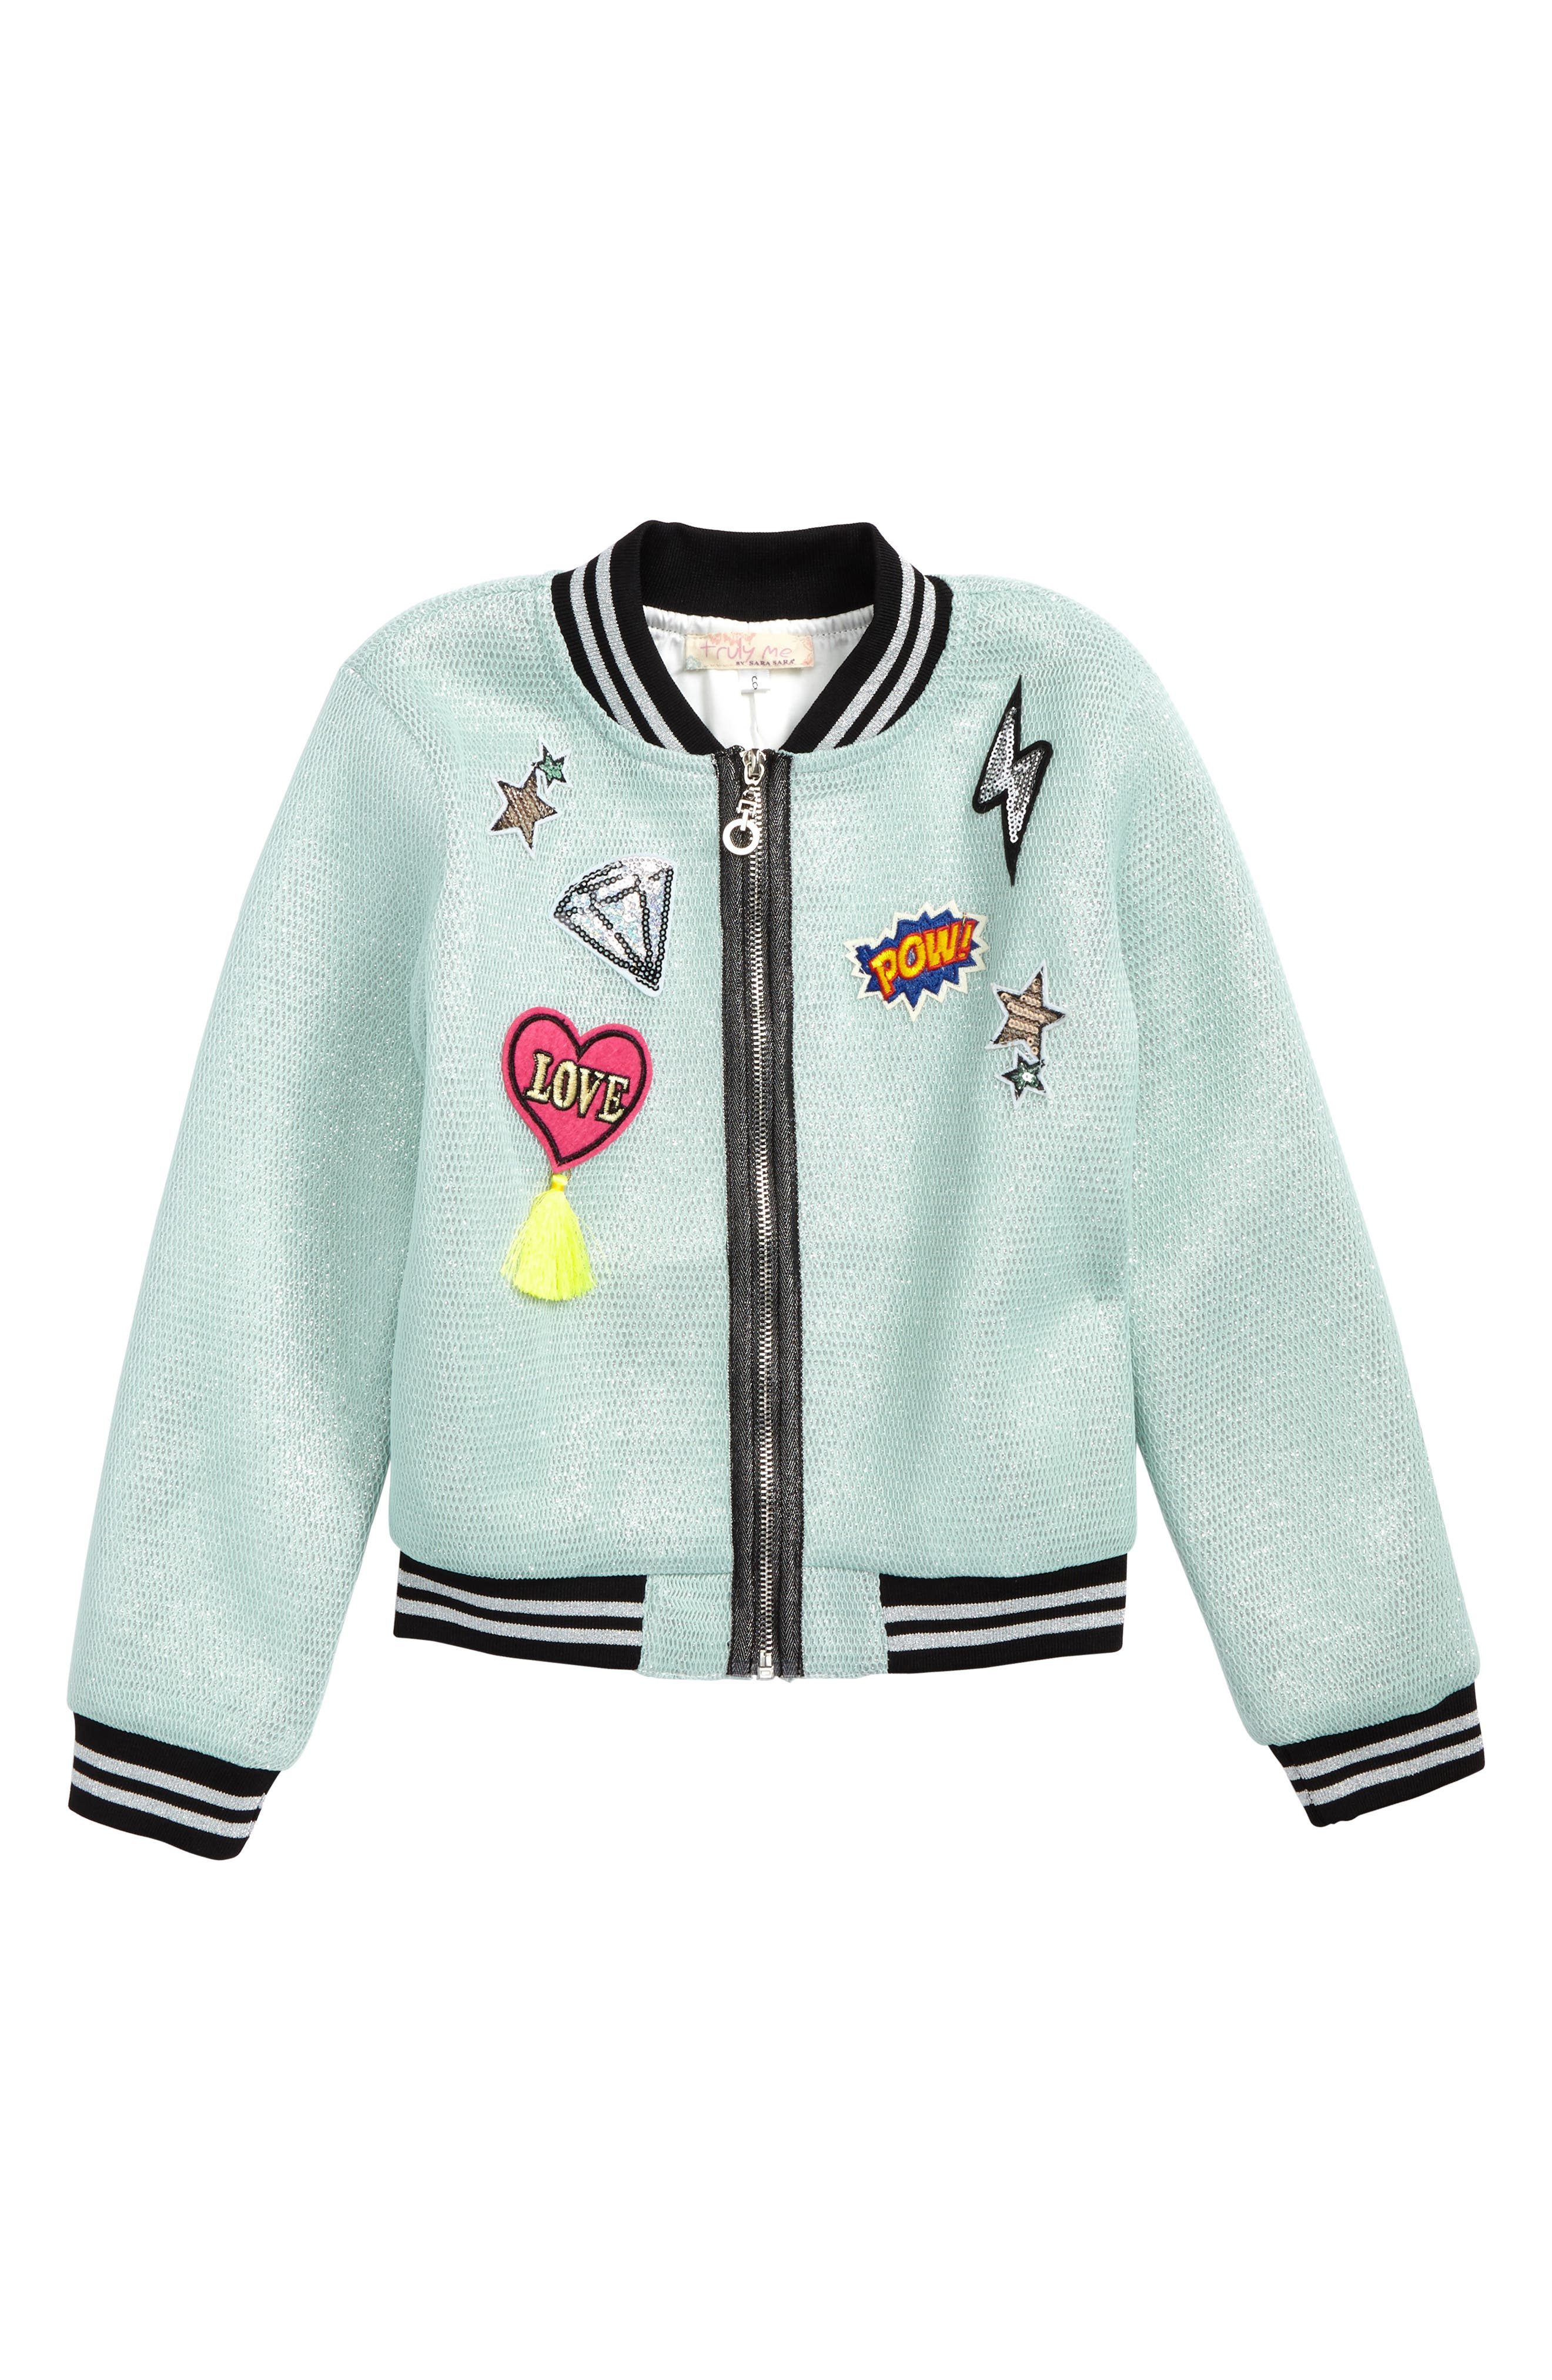 Alternate Image 1 Selected - Truly Me Patches Mesh Bomber Jacket (Toddler Girls & Little Girls)